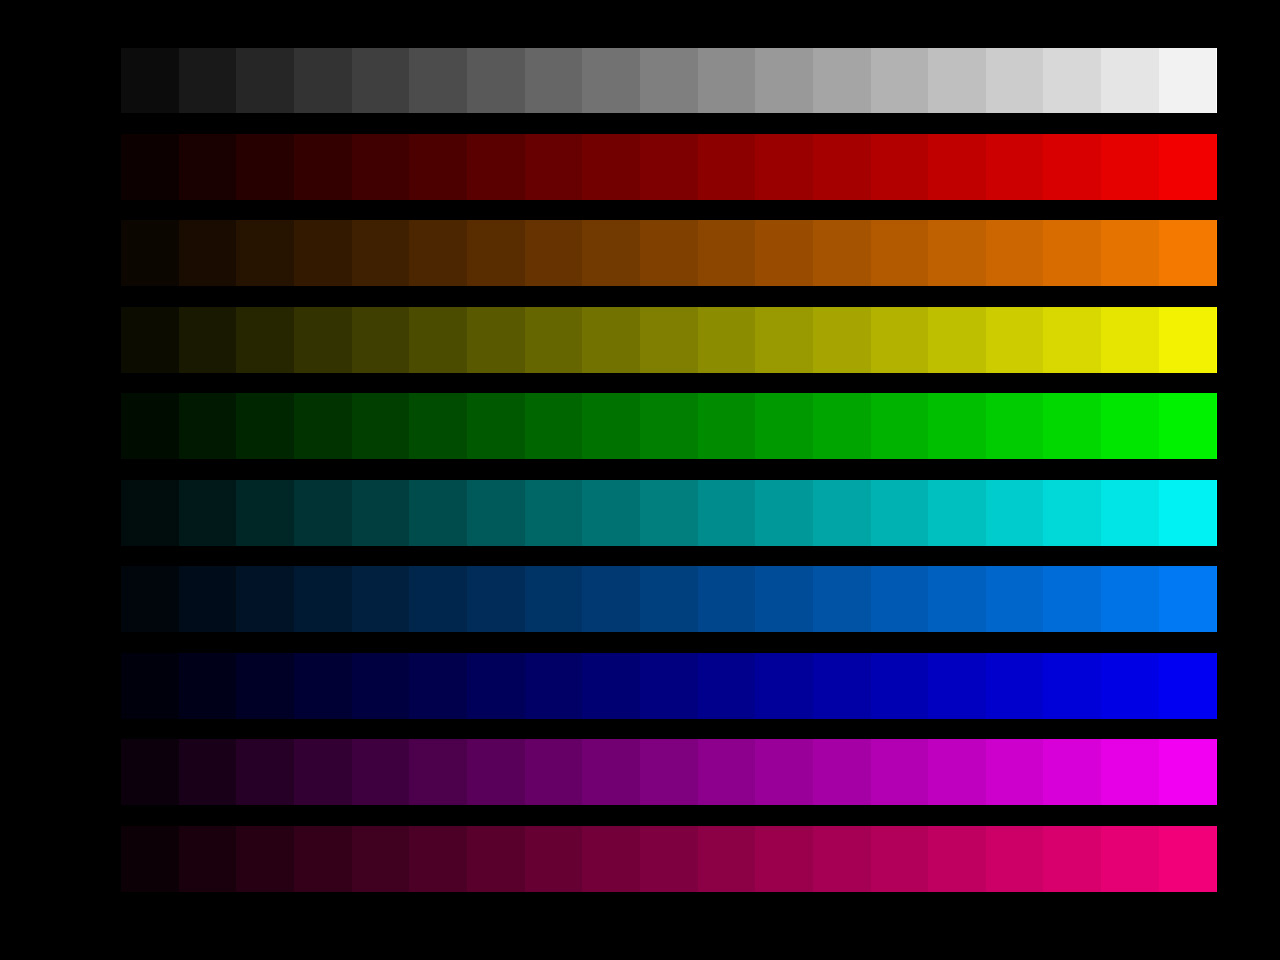 software_colorbars_image03